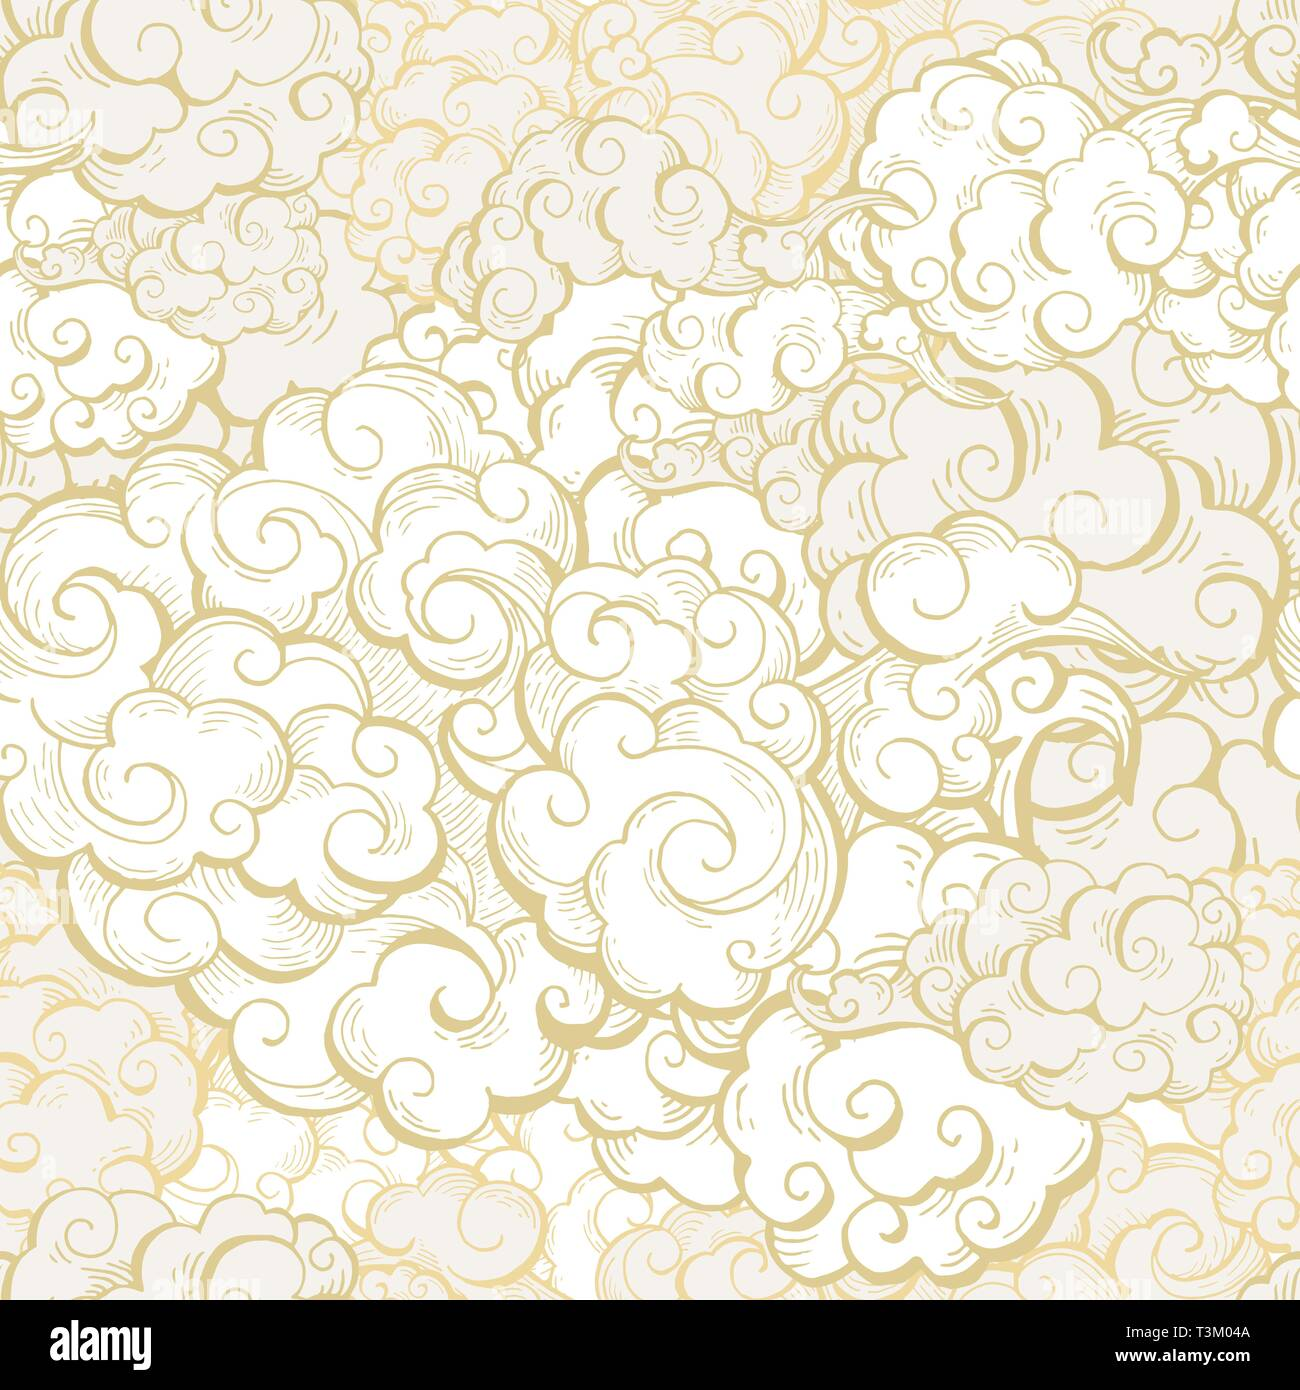 3a566b69425fb Chinese clouds hand drawn vector seamless pattern. Japanese, oriental style  textile ornament. Golden outline swirls, curls background.